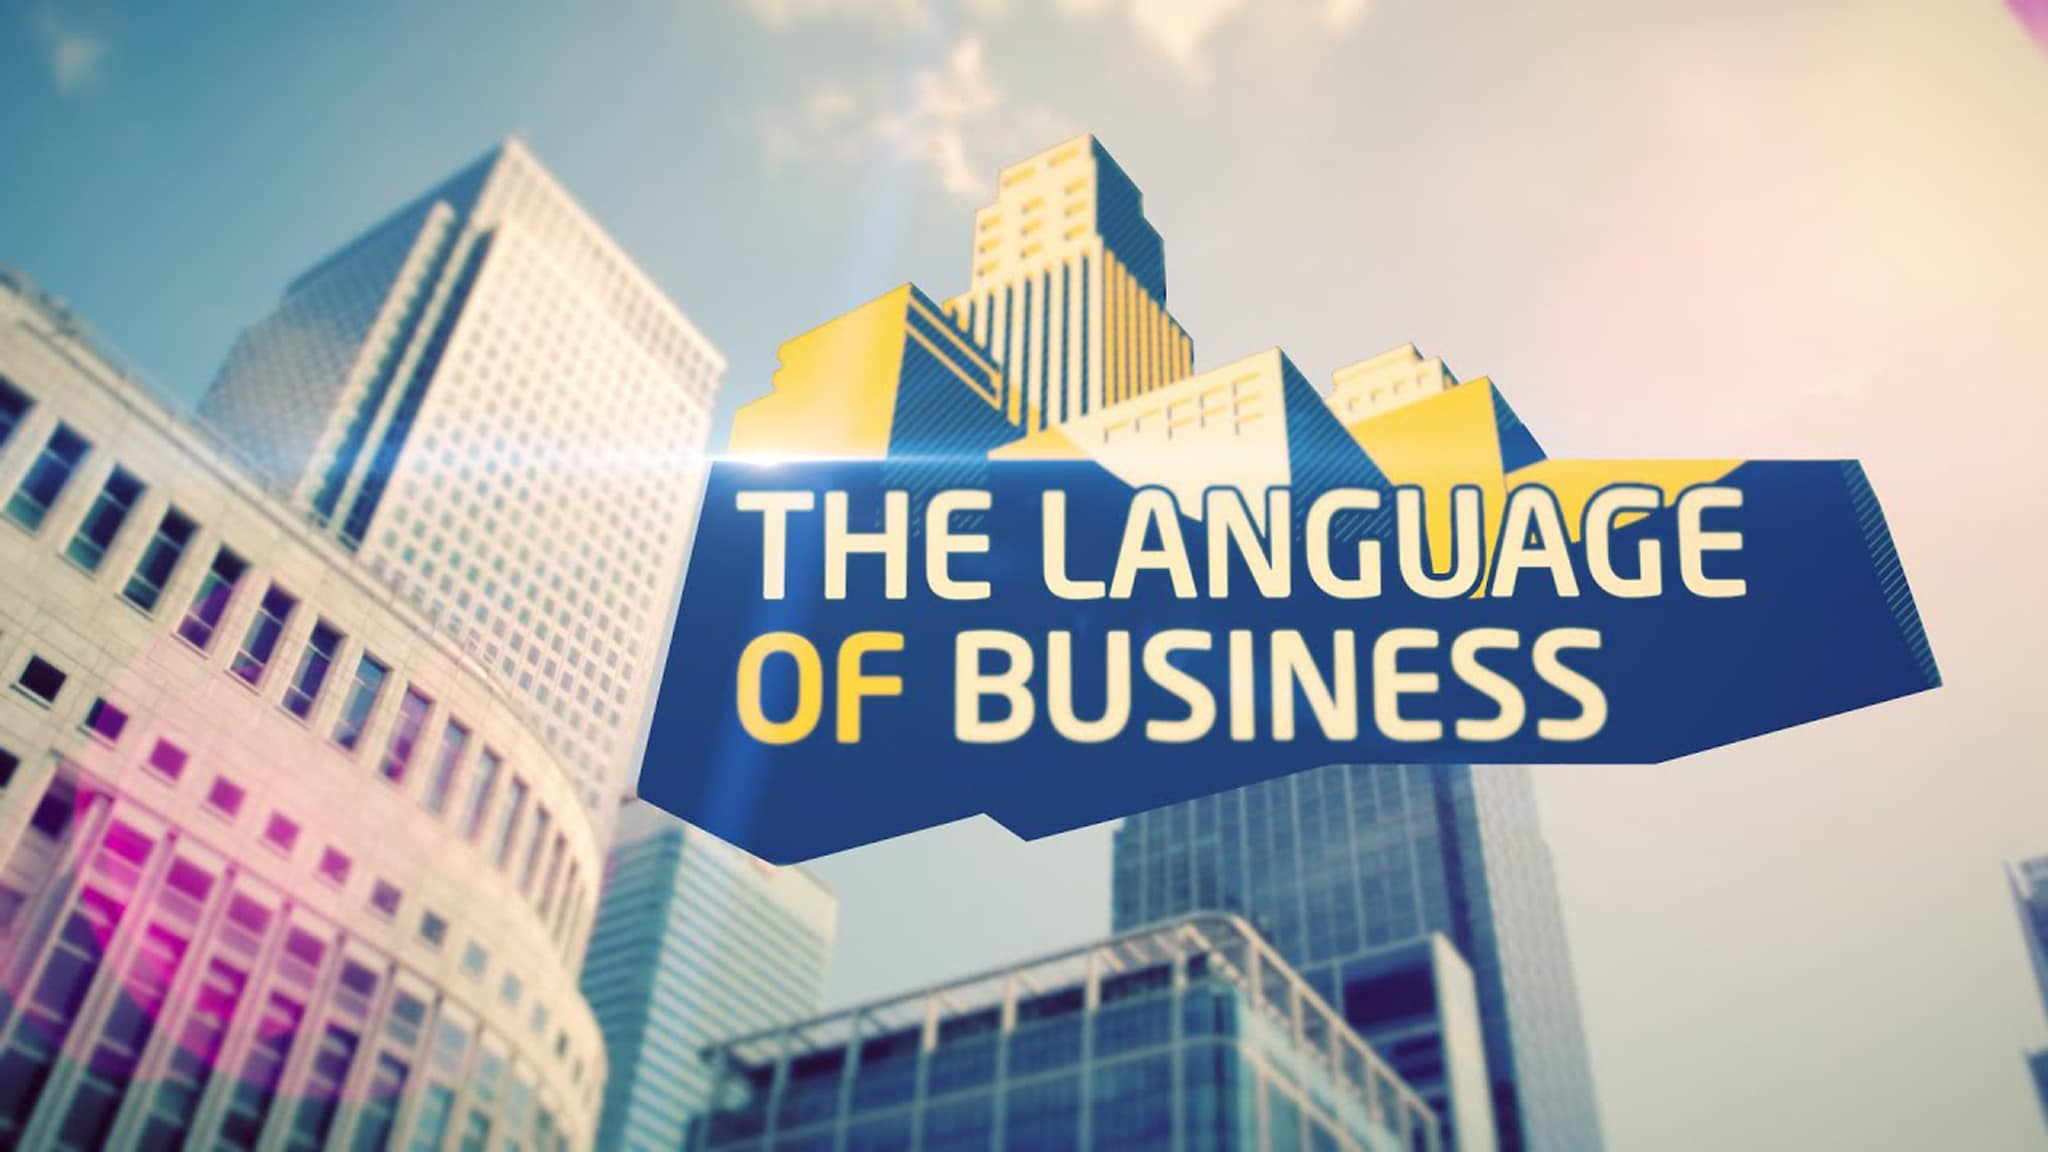 Rai Scuola The Language of Business episodio 12 Replica